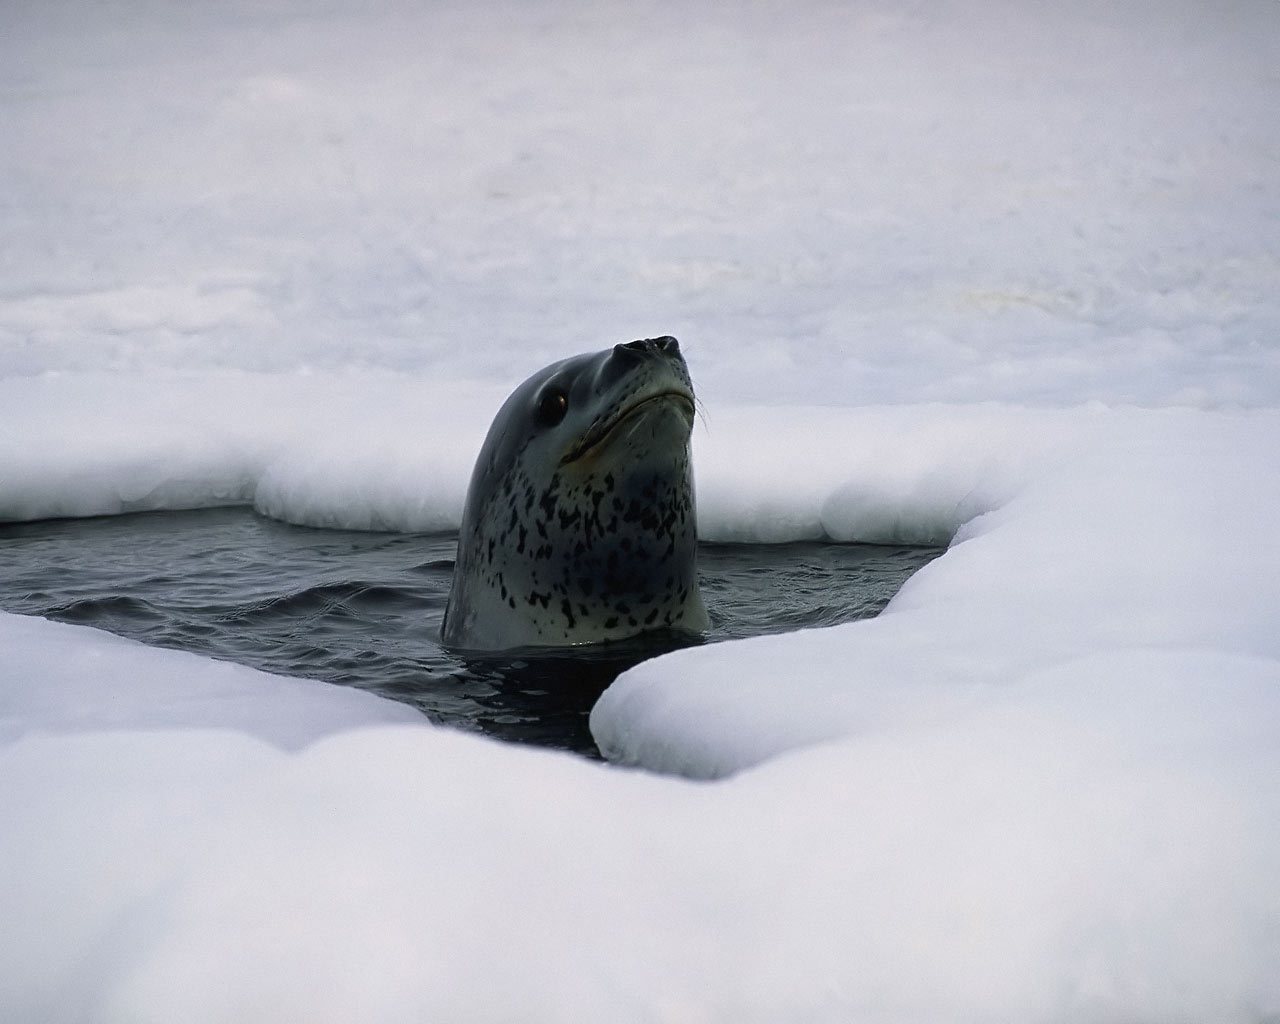 As there was no ice on the sea, we didn't see this one, but it gives a good impression